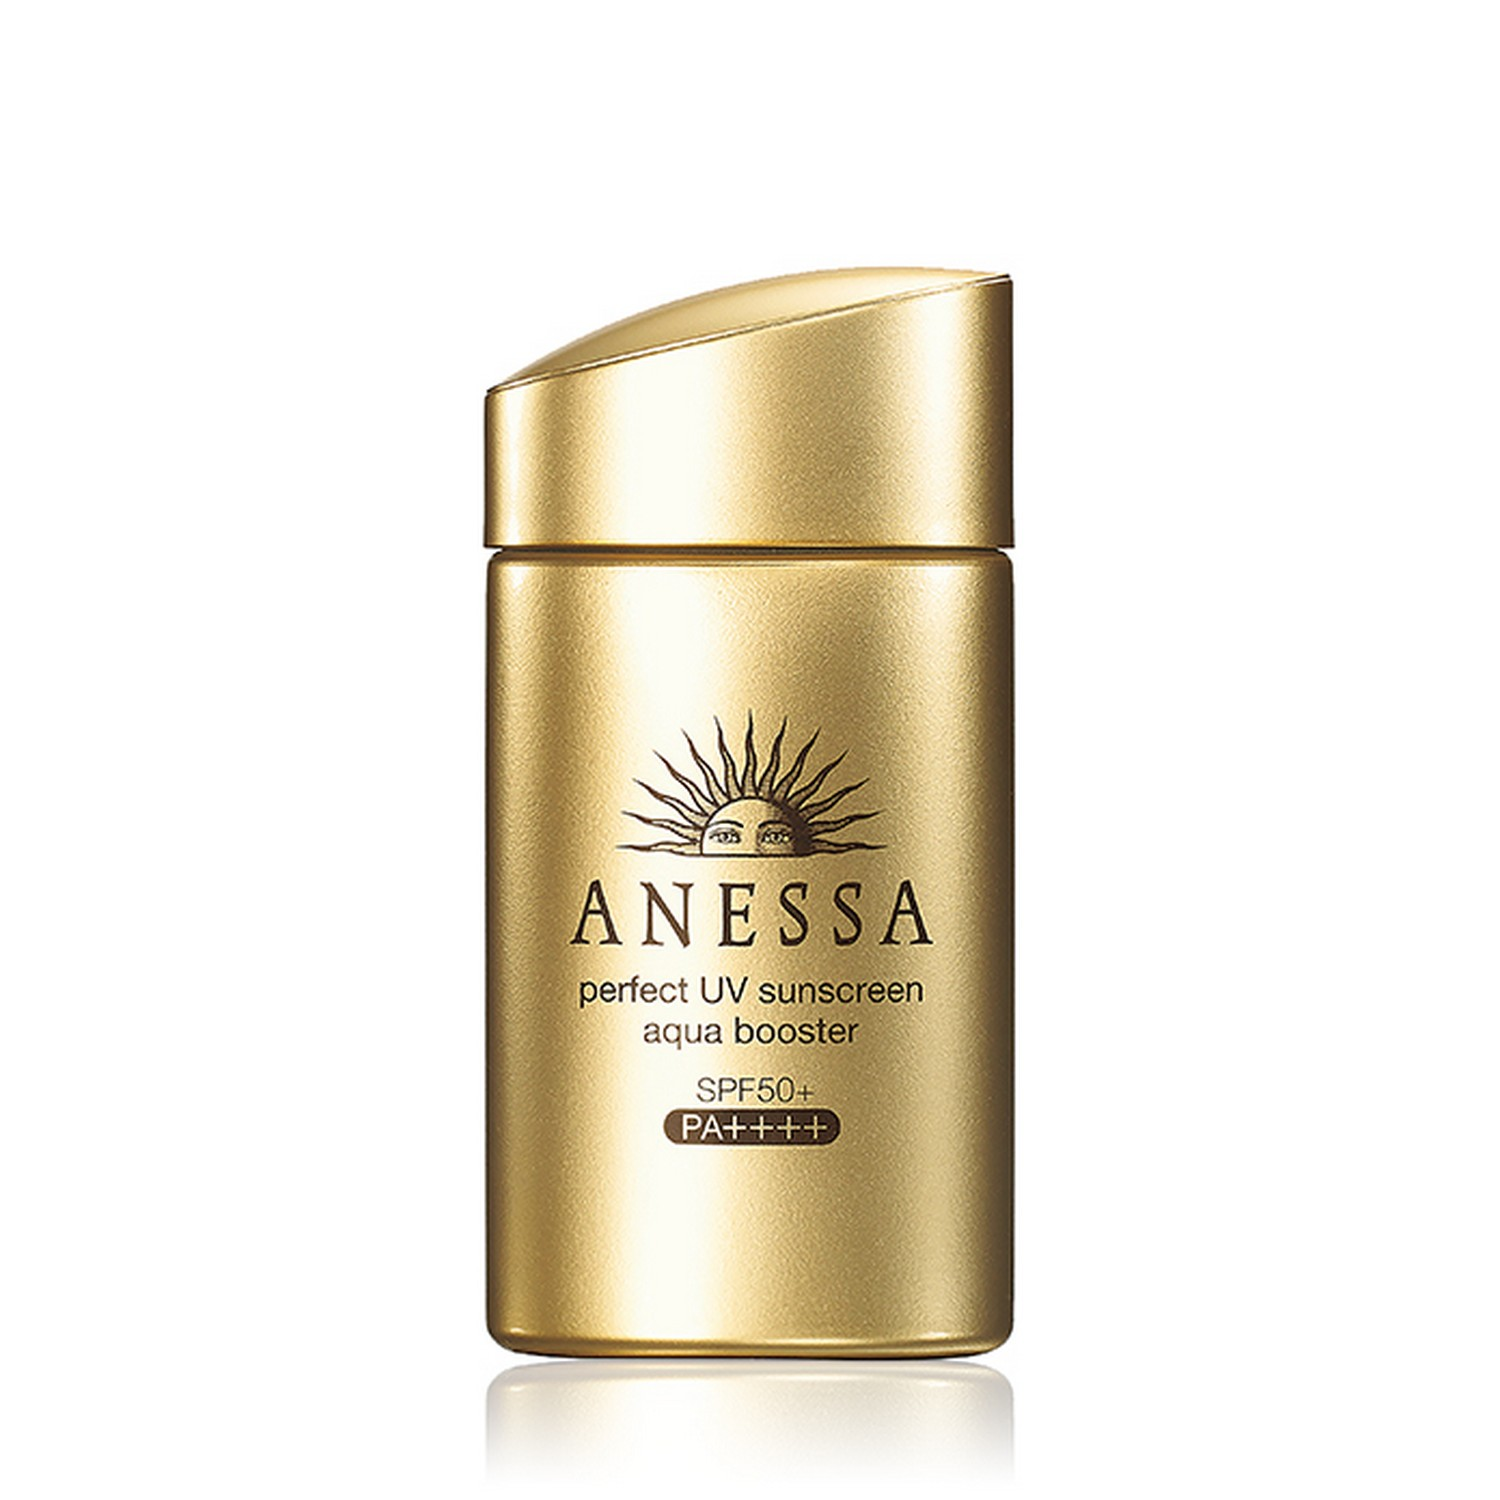 ANESSA ANESSA perfect UV sunscreen aqua booster SPF50+ PA++++ (60 ml)